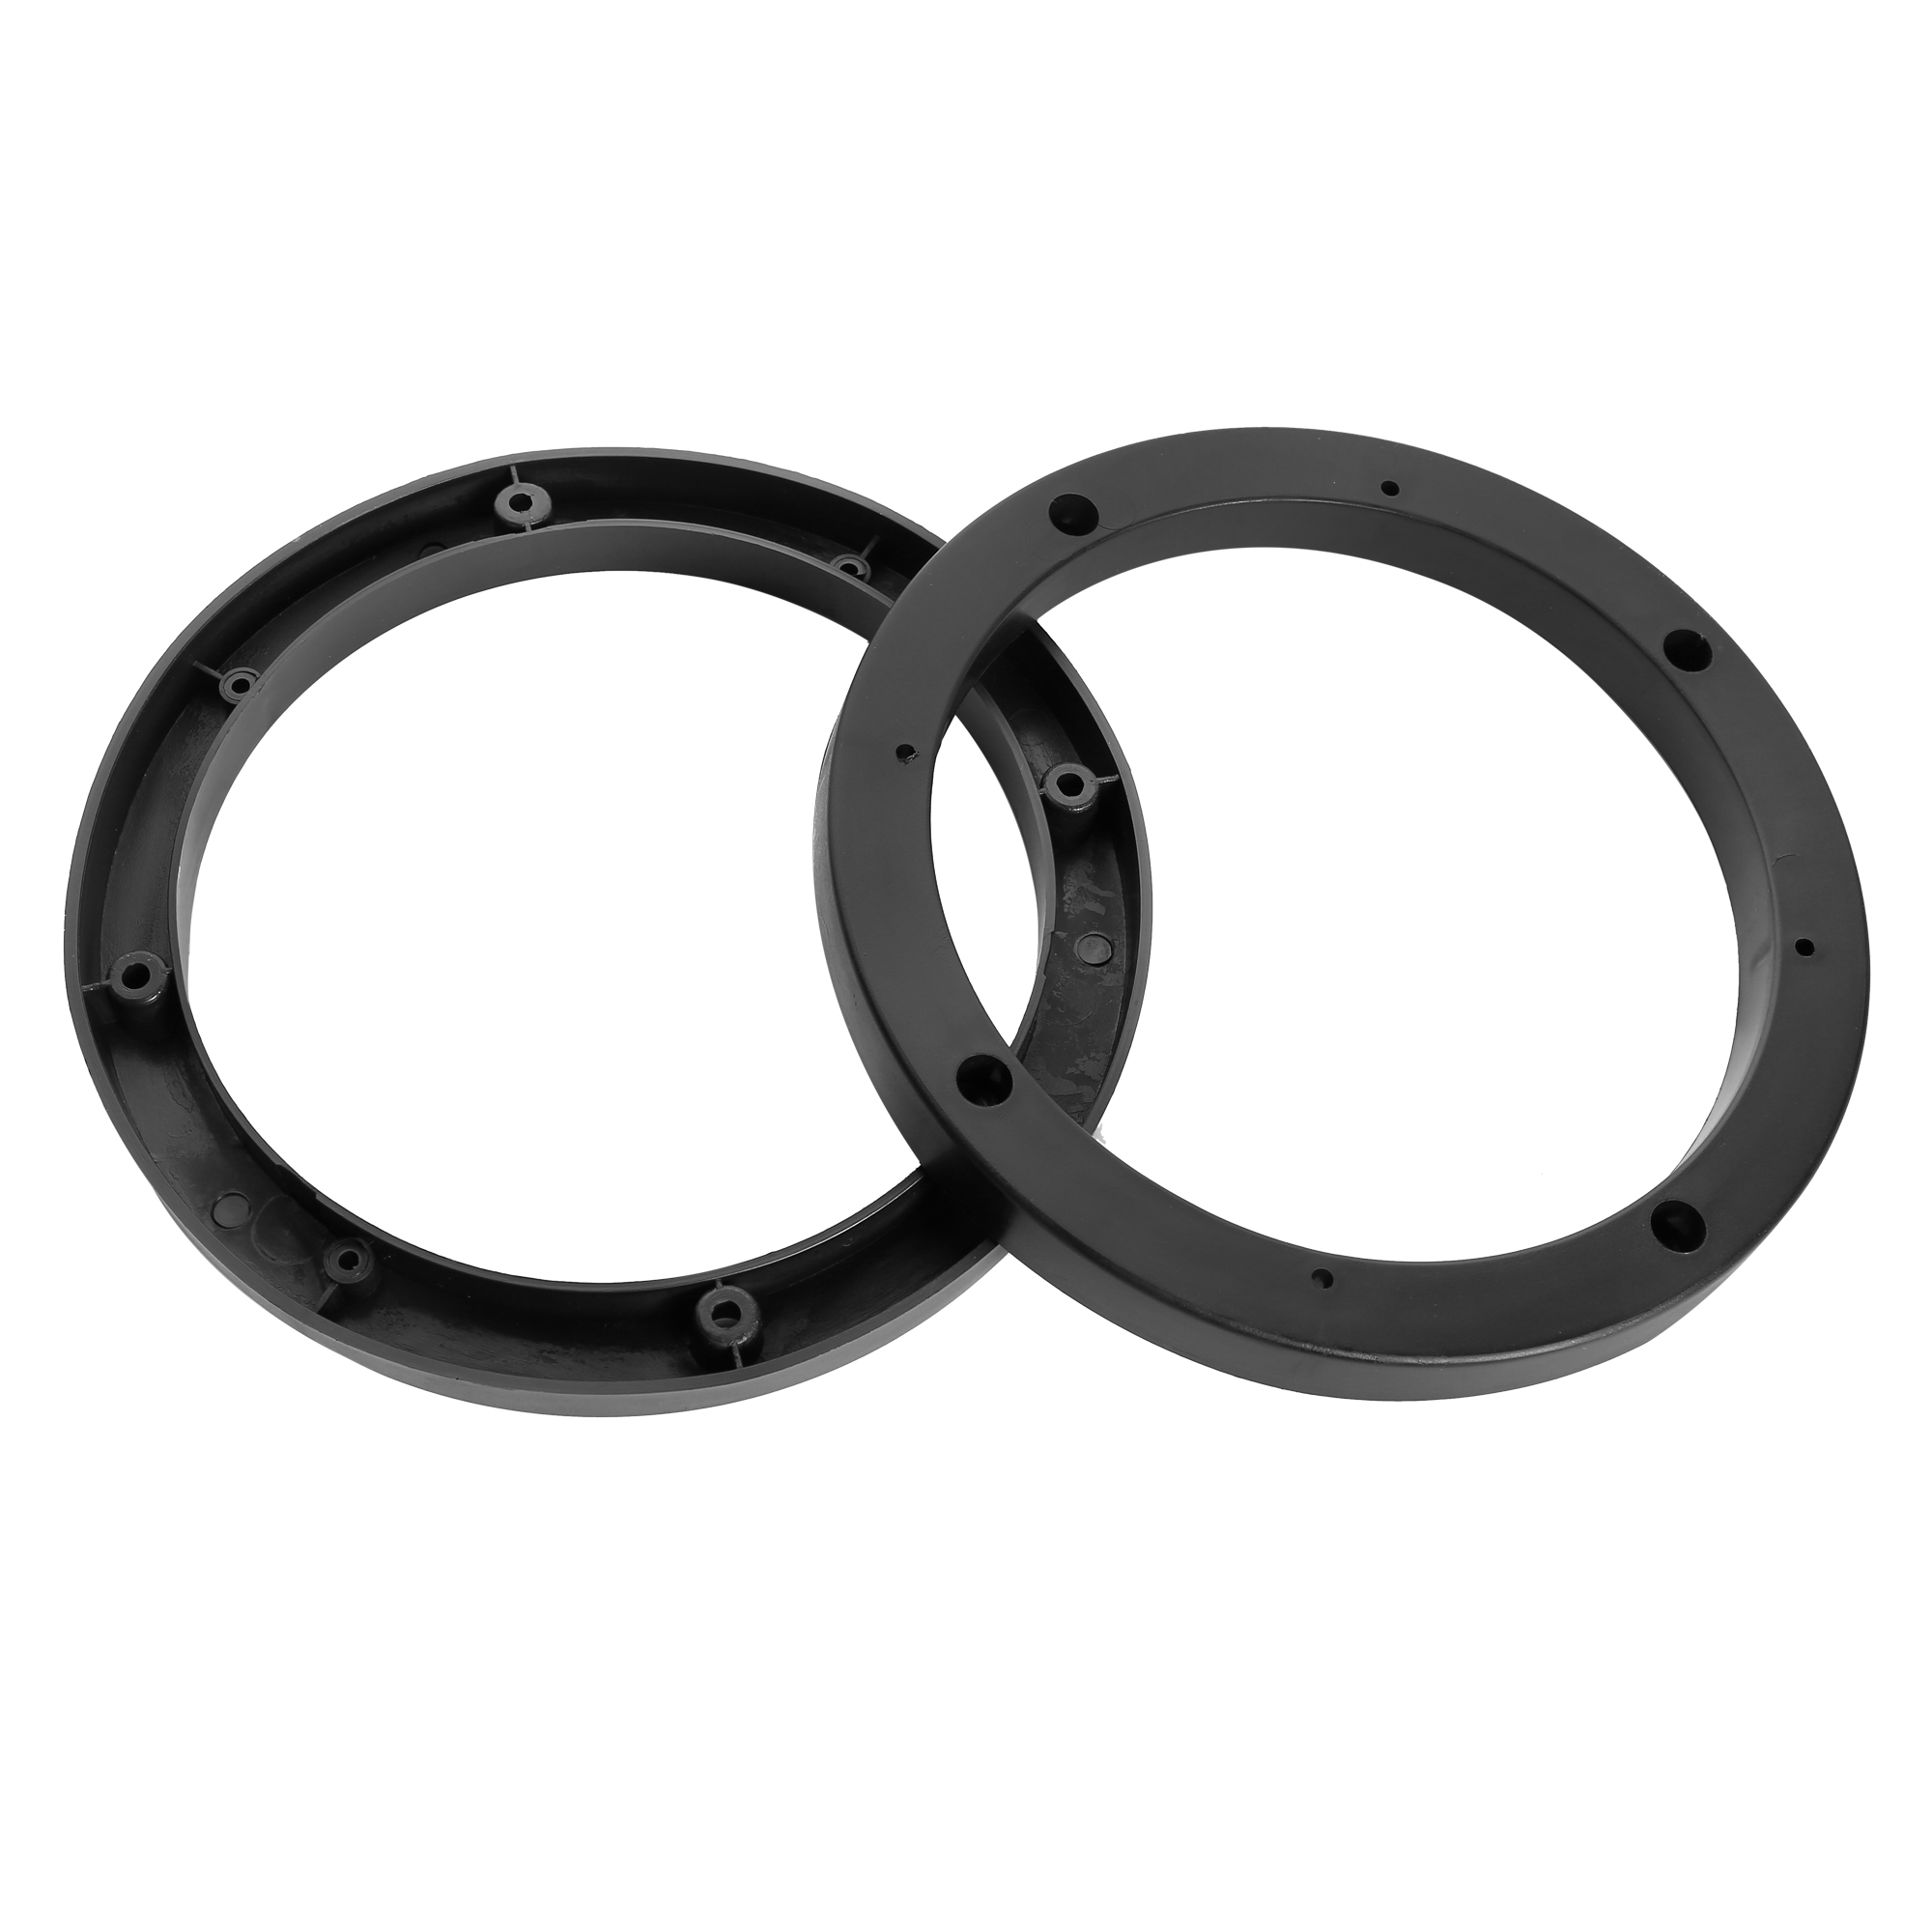 "Auto Car Truck Black 6.5"" Plastic Speaker Spacers 14mm Depth 2 Pcs"